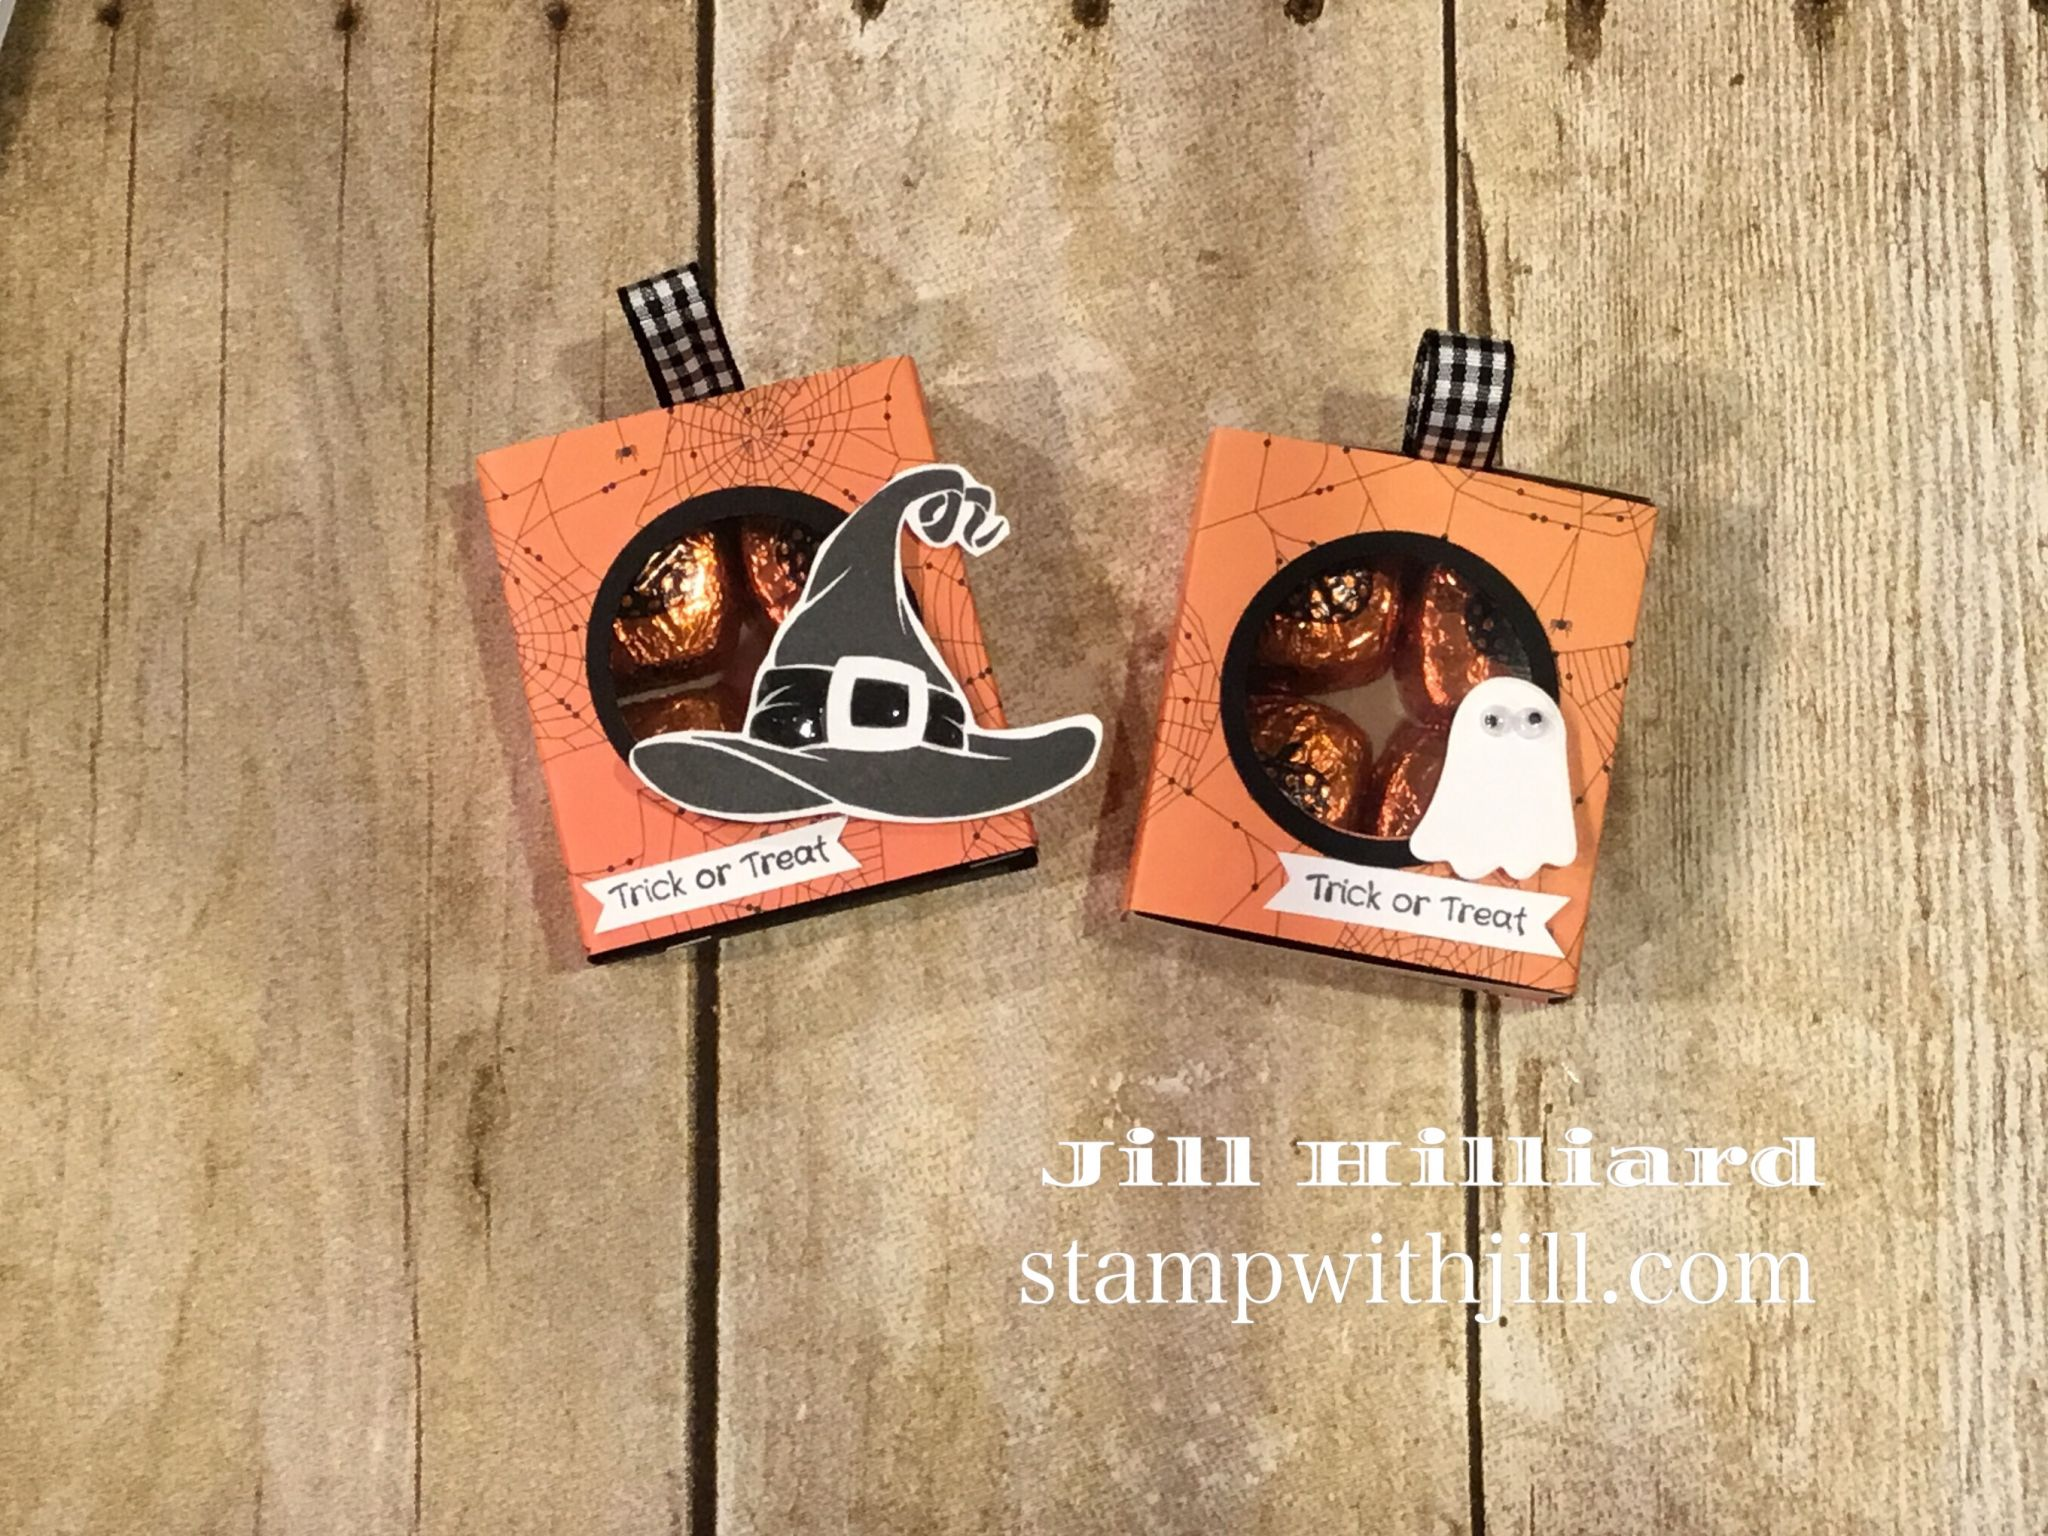 Handmade Dove Chocolate Box, Stamp with Jill, Fun Stampers Journey